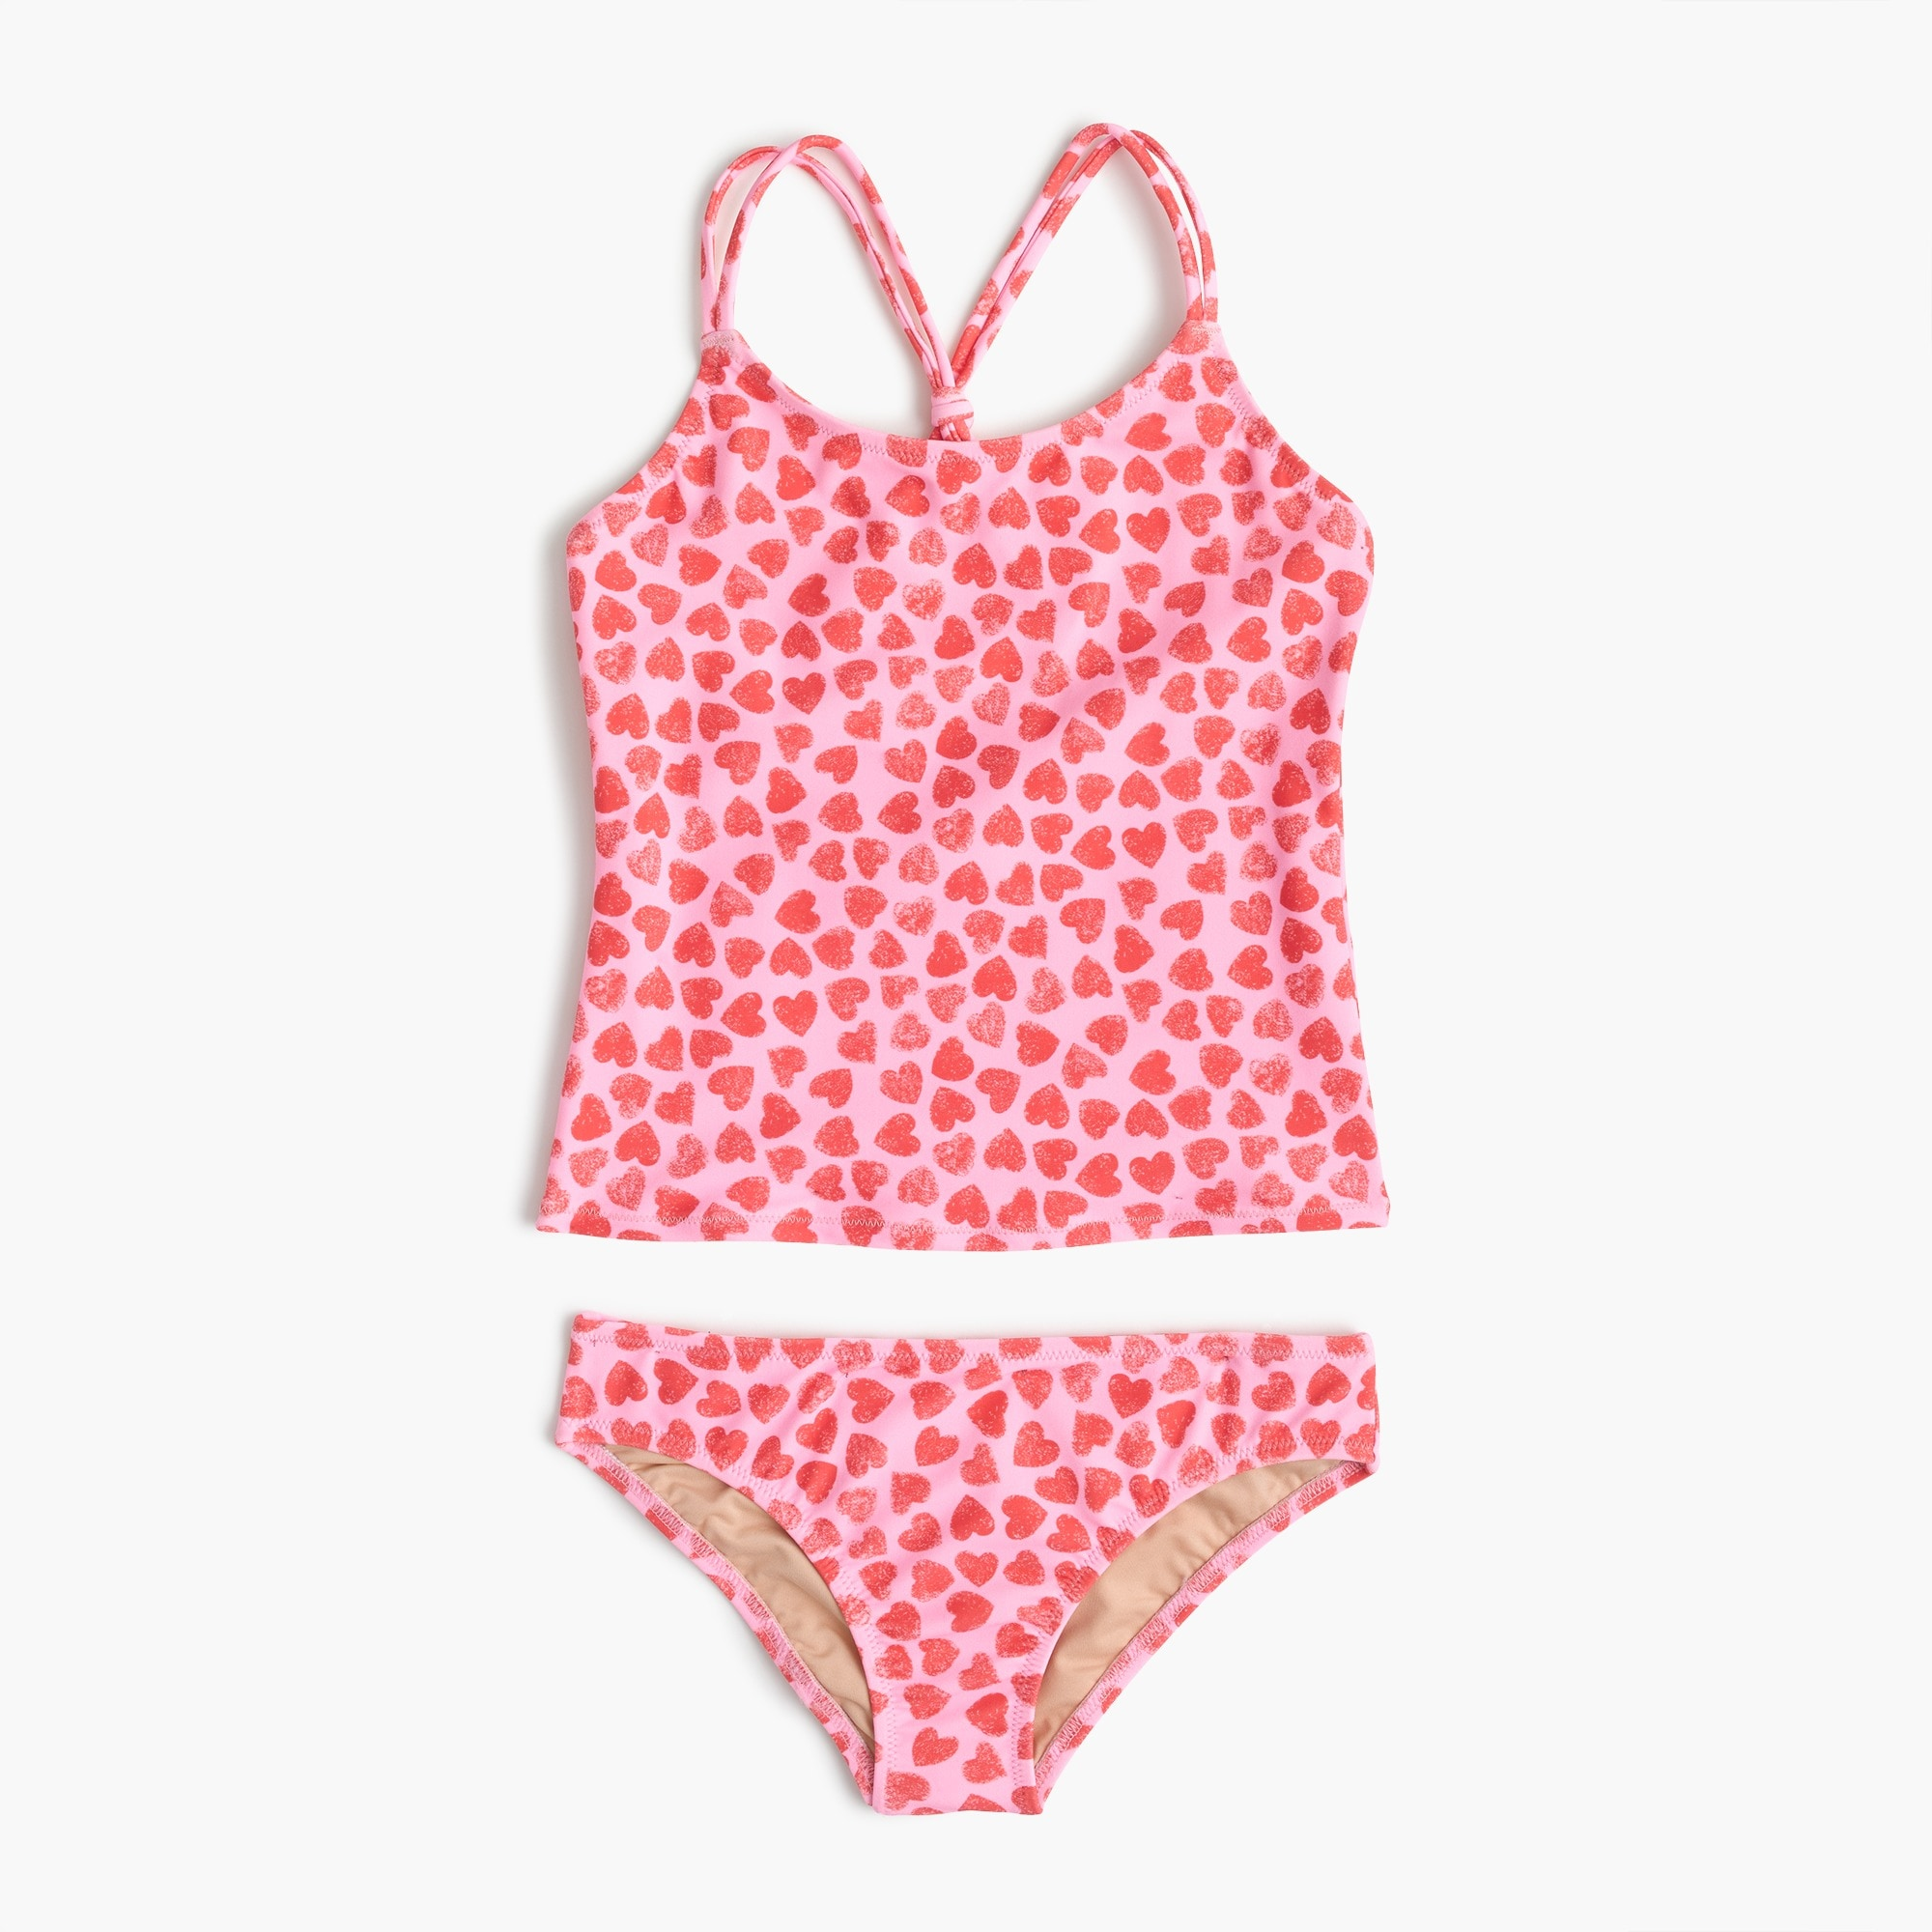 Image 1 for Girls' tankini set in hearts